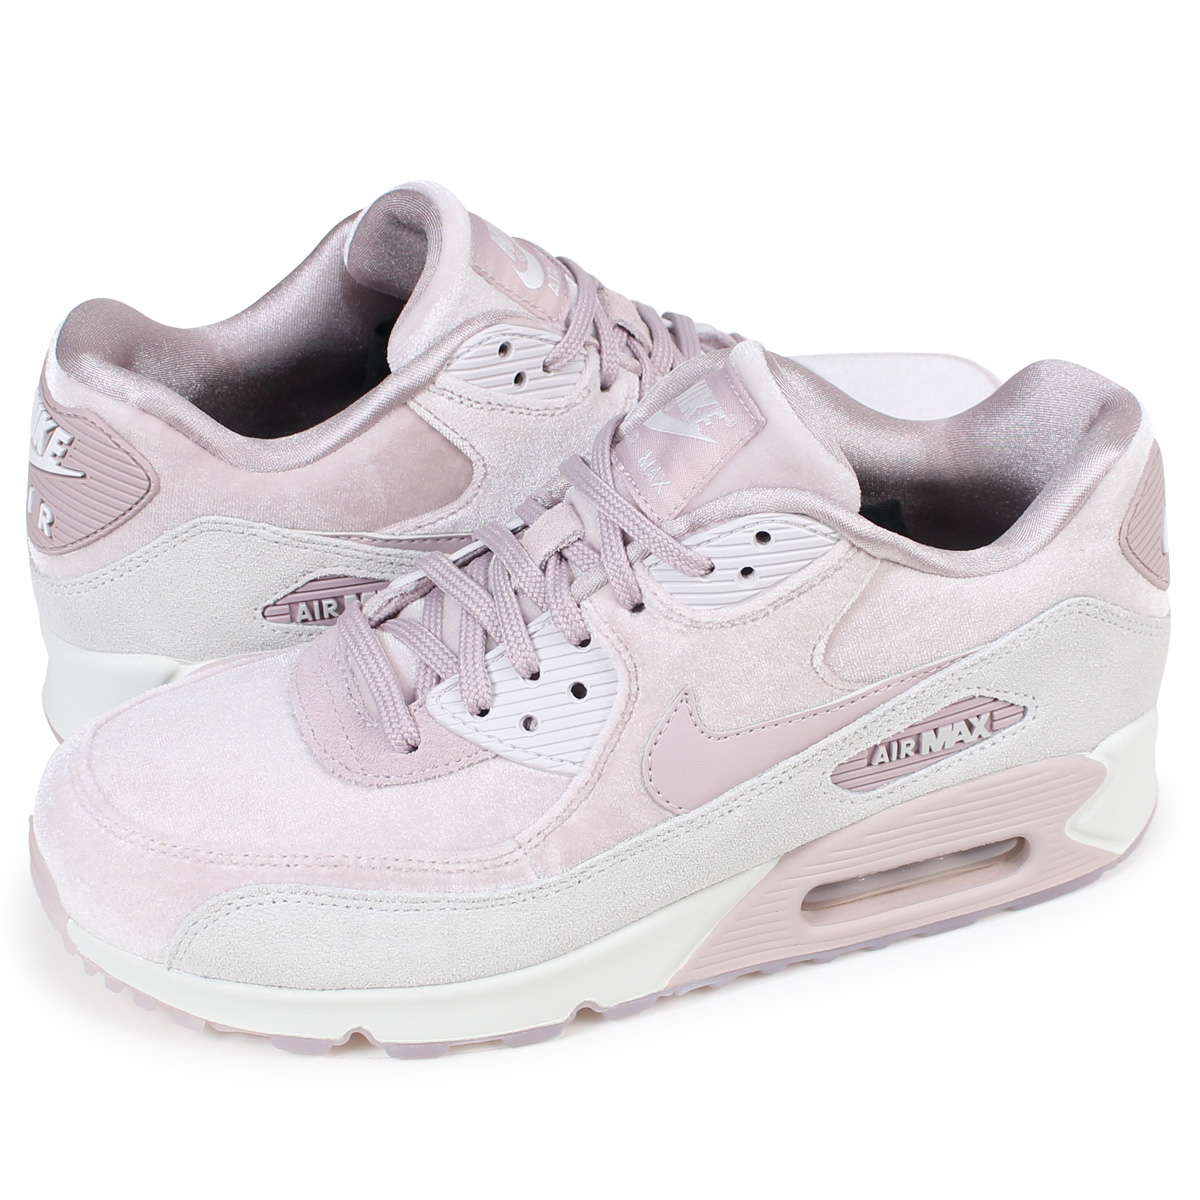 new arrival 92927 c21c6 NIKE WMNS AIR MAX 90 LX Kie Ney AMAX 90 Lady's sneakers 898,512-600 shoes  pink [1/9 Shinnyu load] [1801]